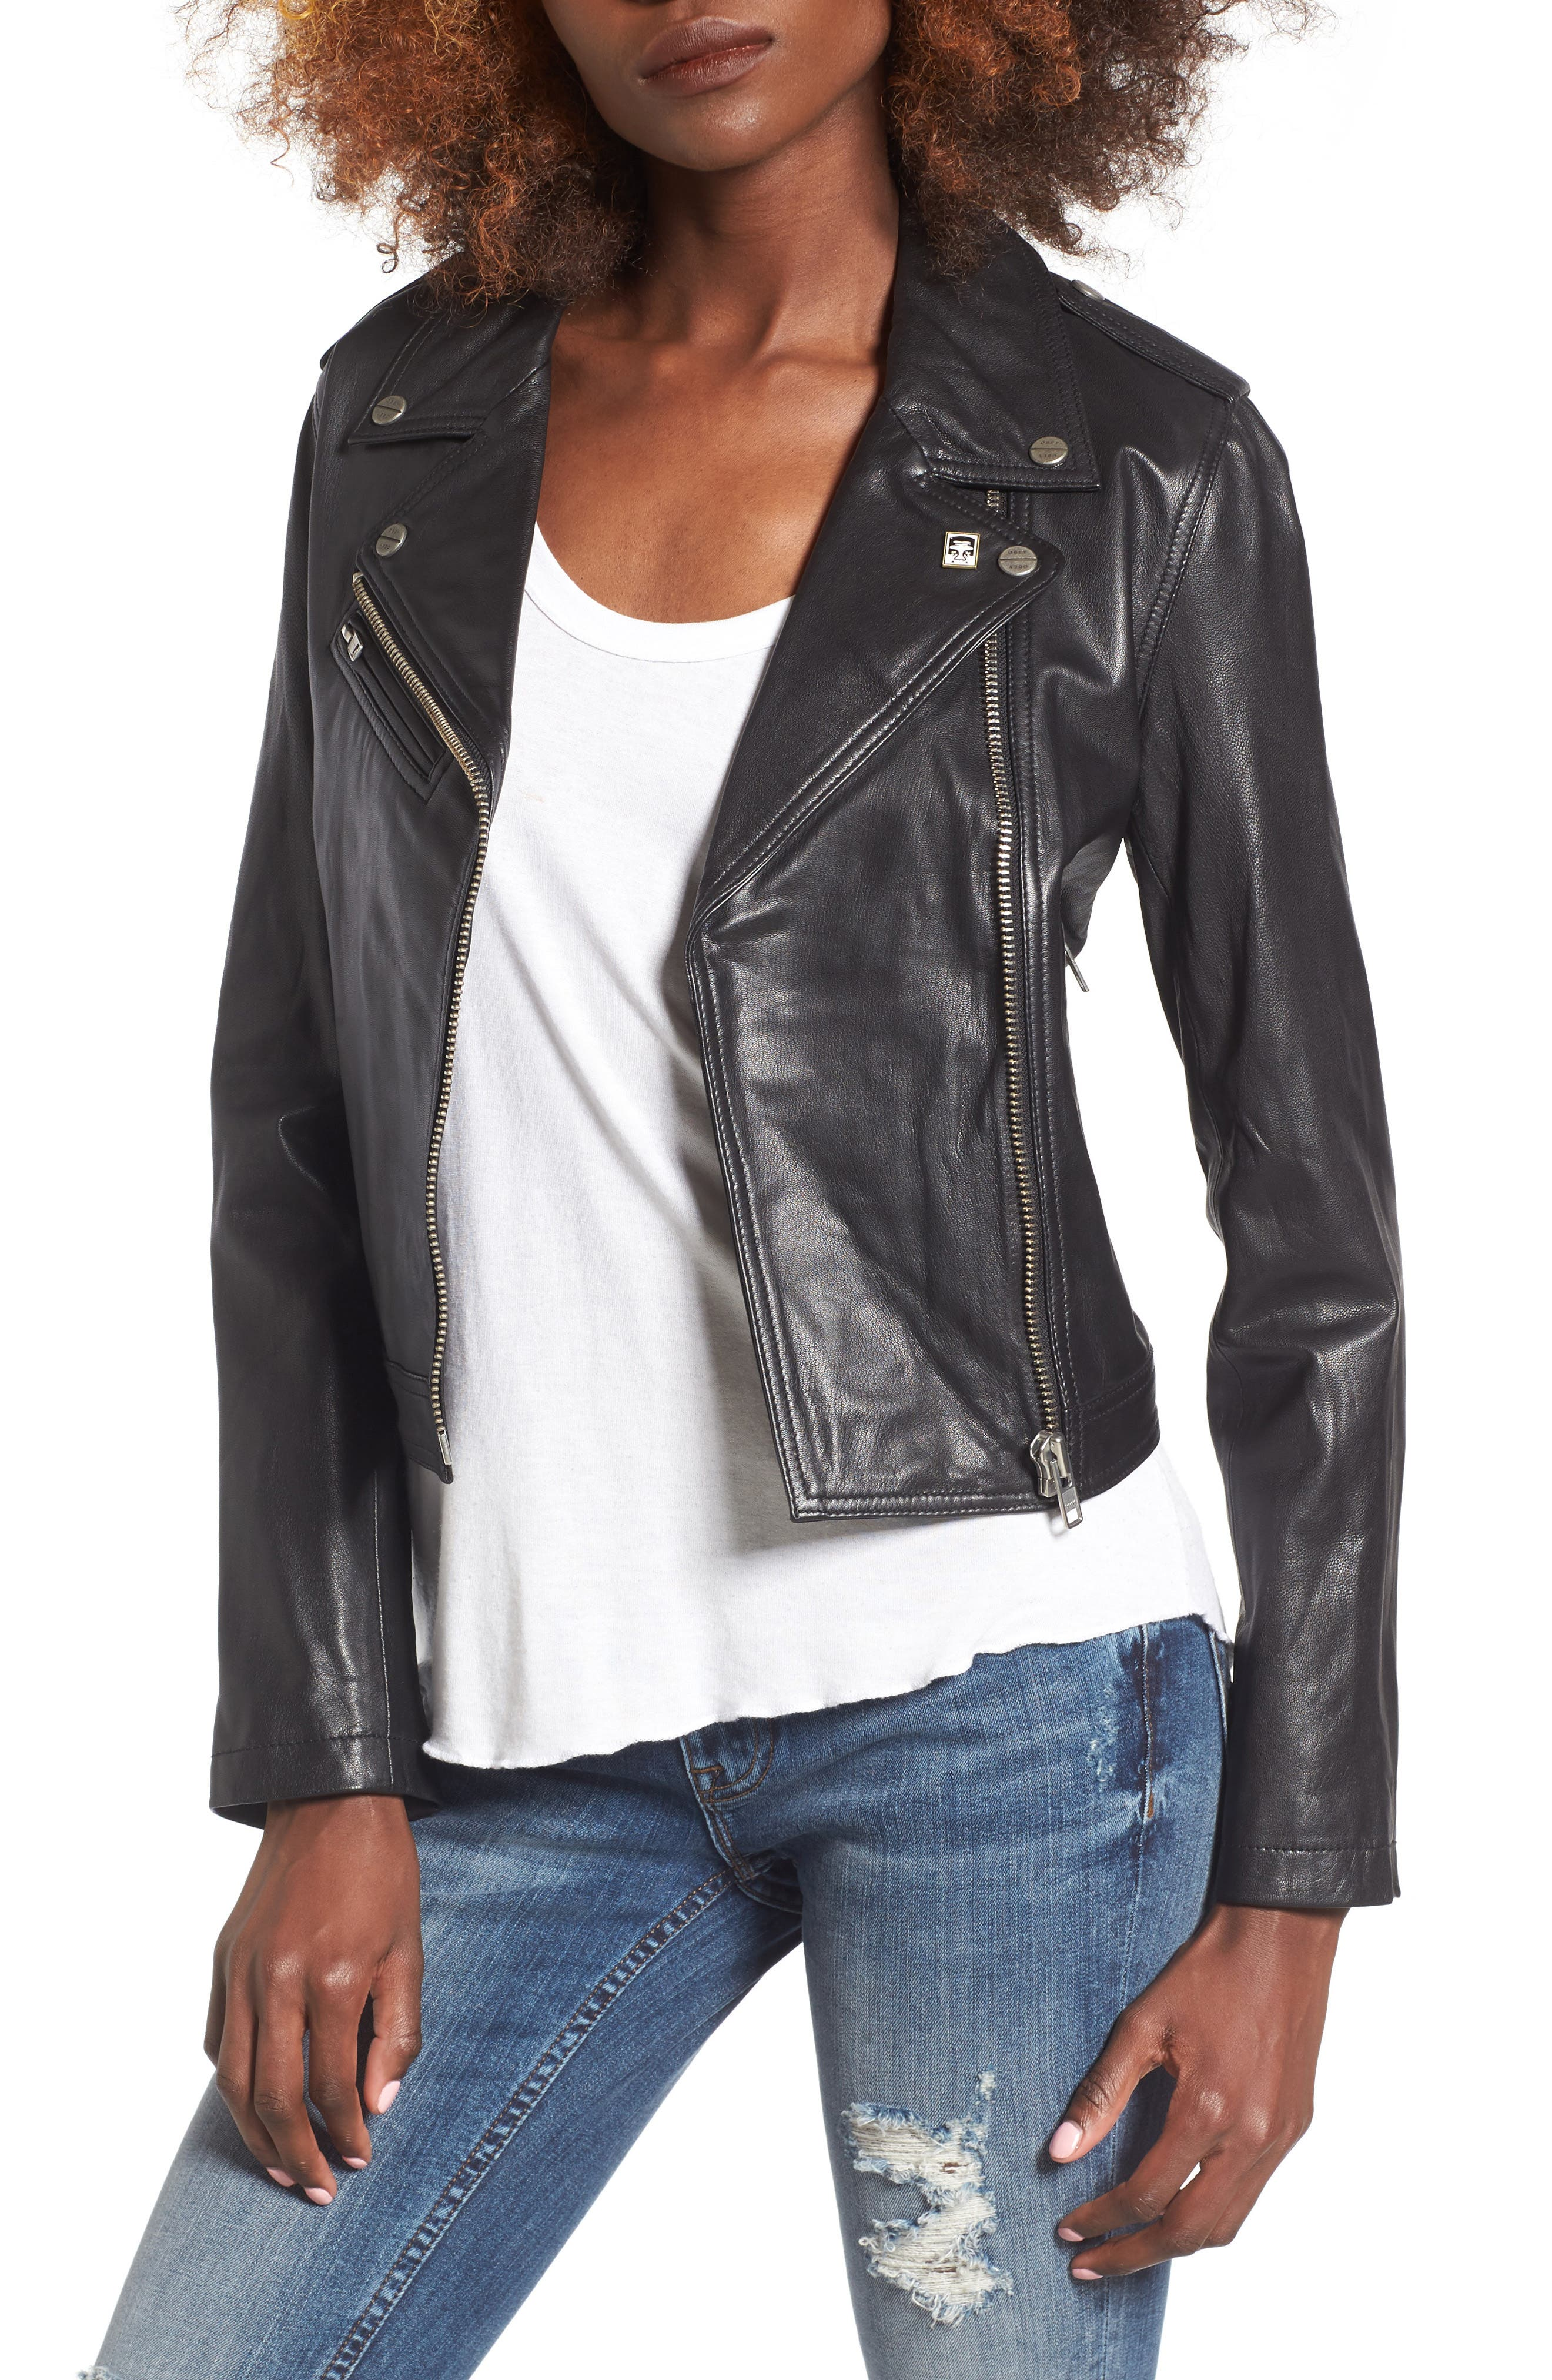 Diablo City Leather Moto Jacket,                             Main thumbnail 1, color,                             Black